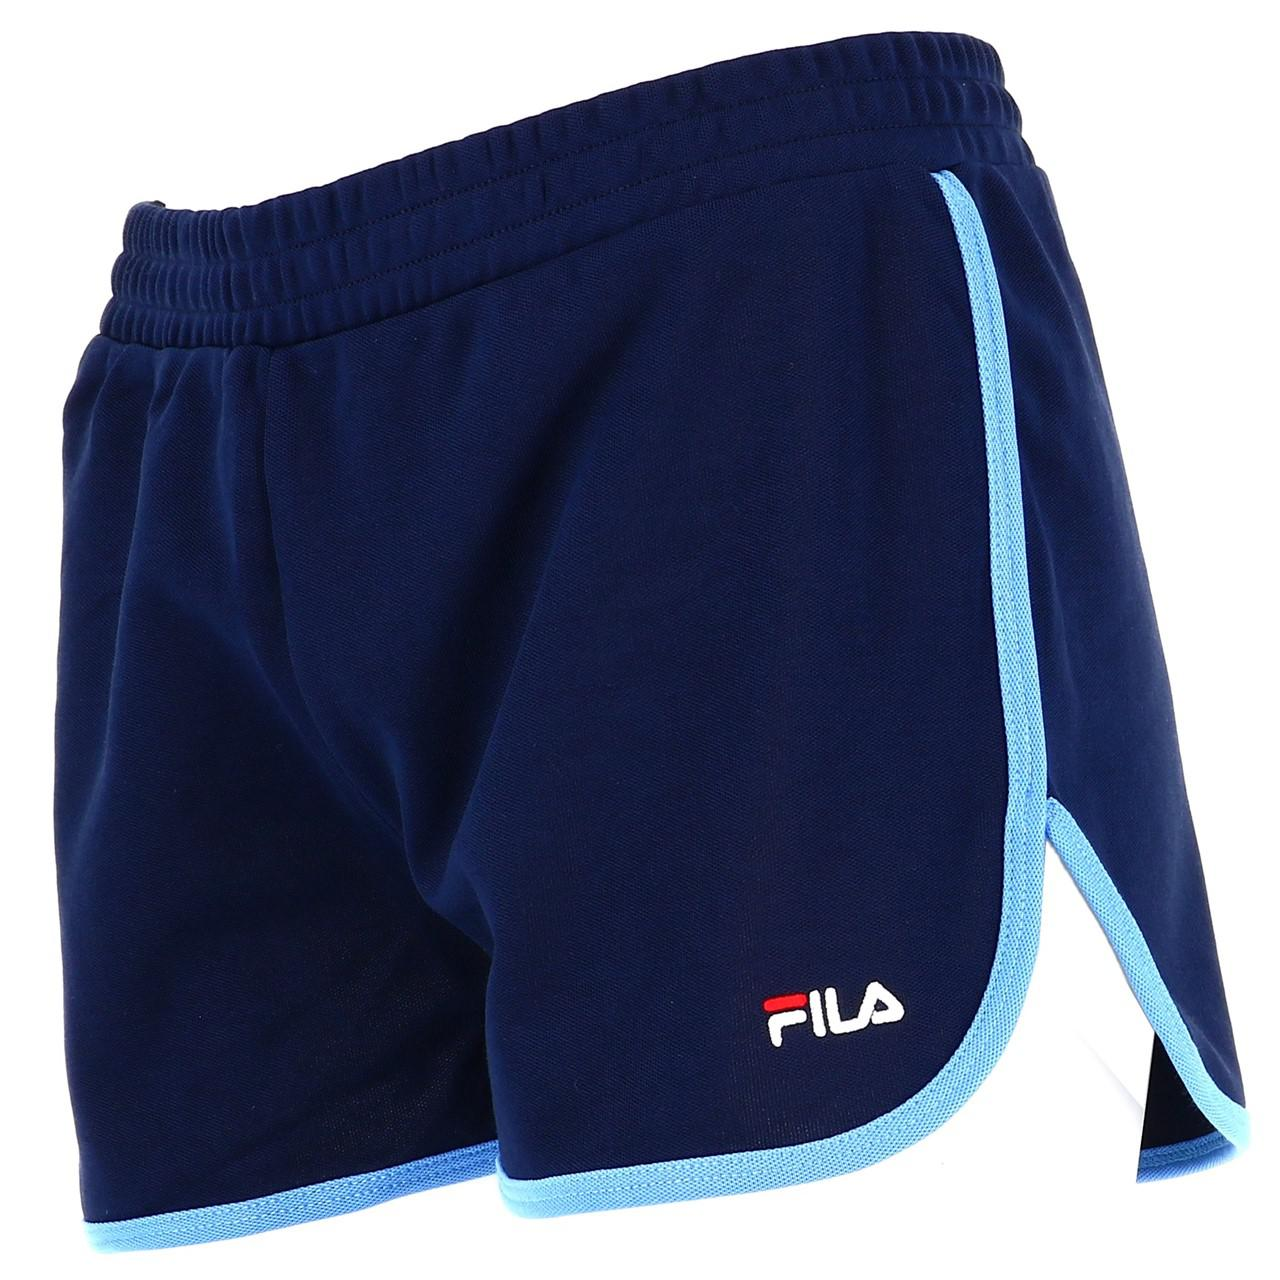 Bermuda-Shorts-Fila-Paige-Shorts-Vintage-W-Blue-45218-New thumbnail 4